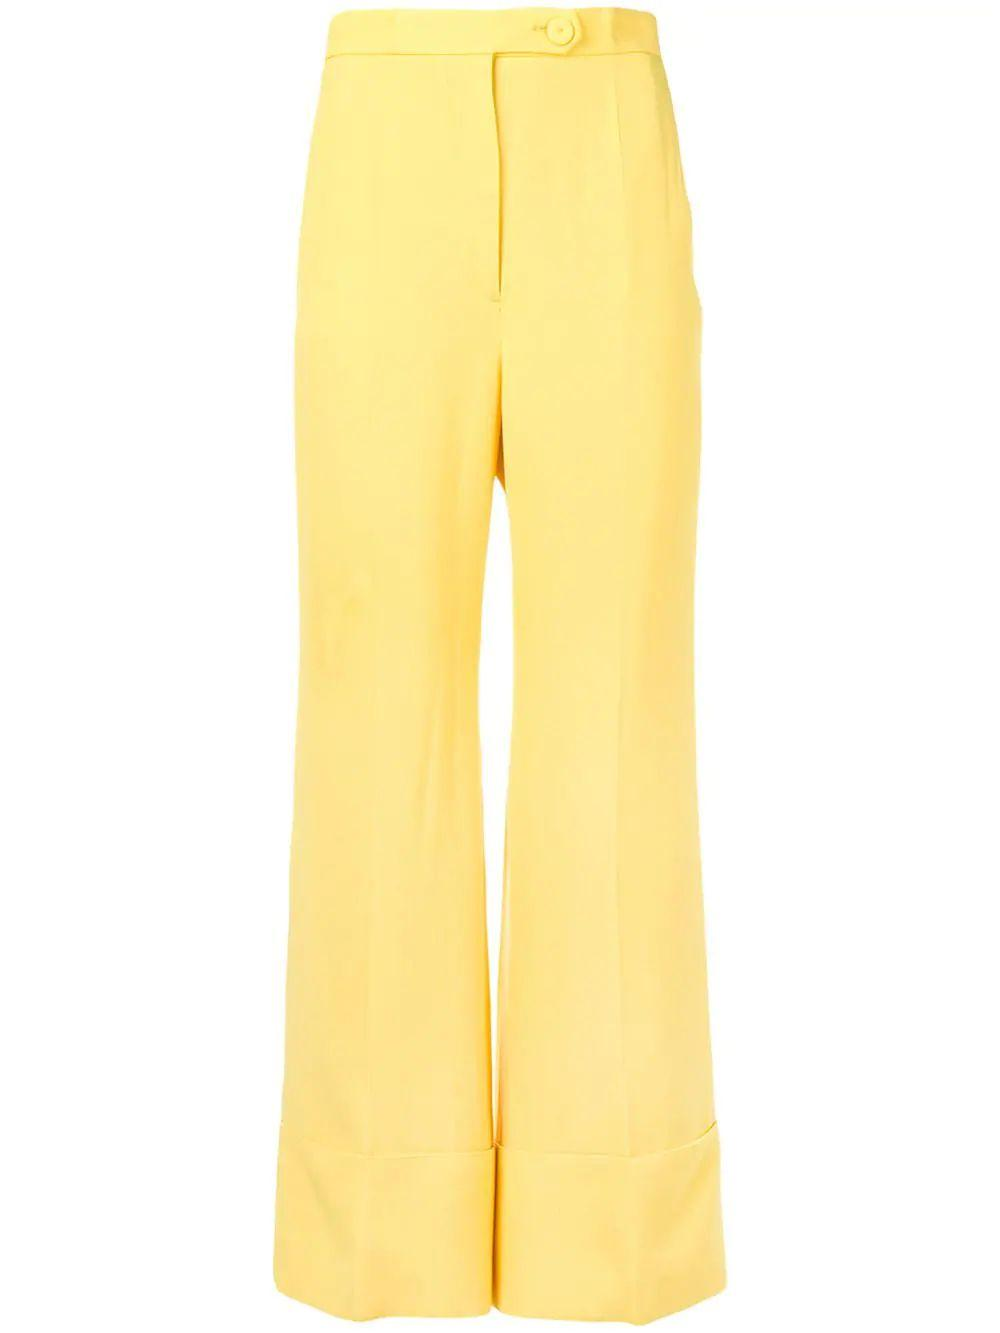 Cuffed High Waist Trouser